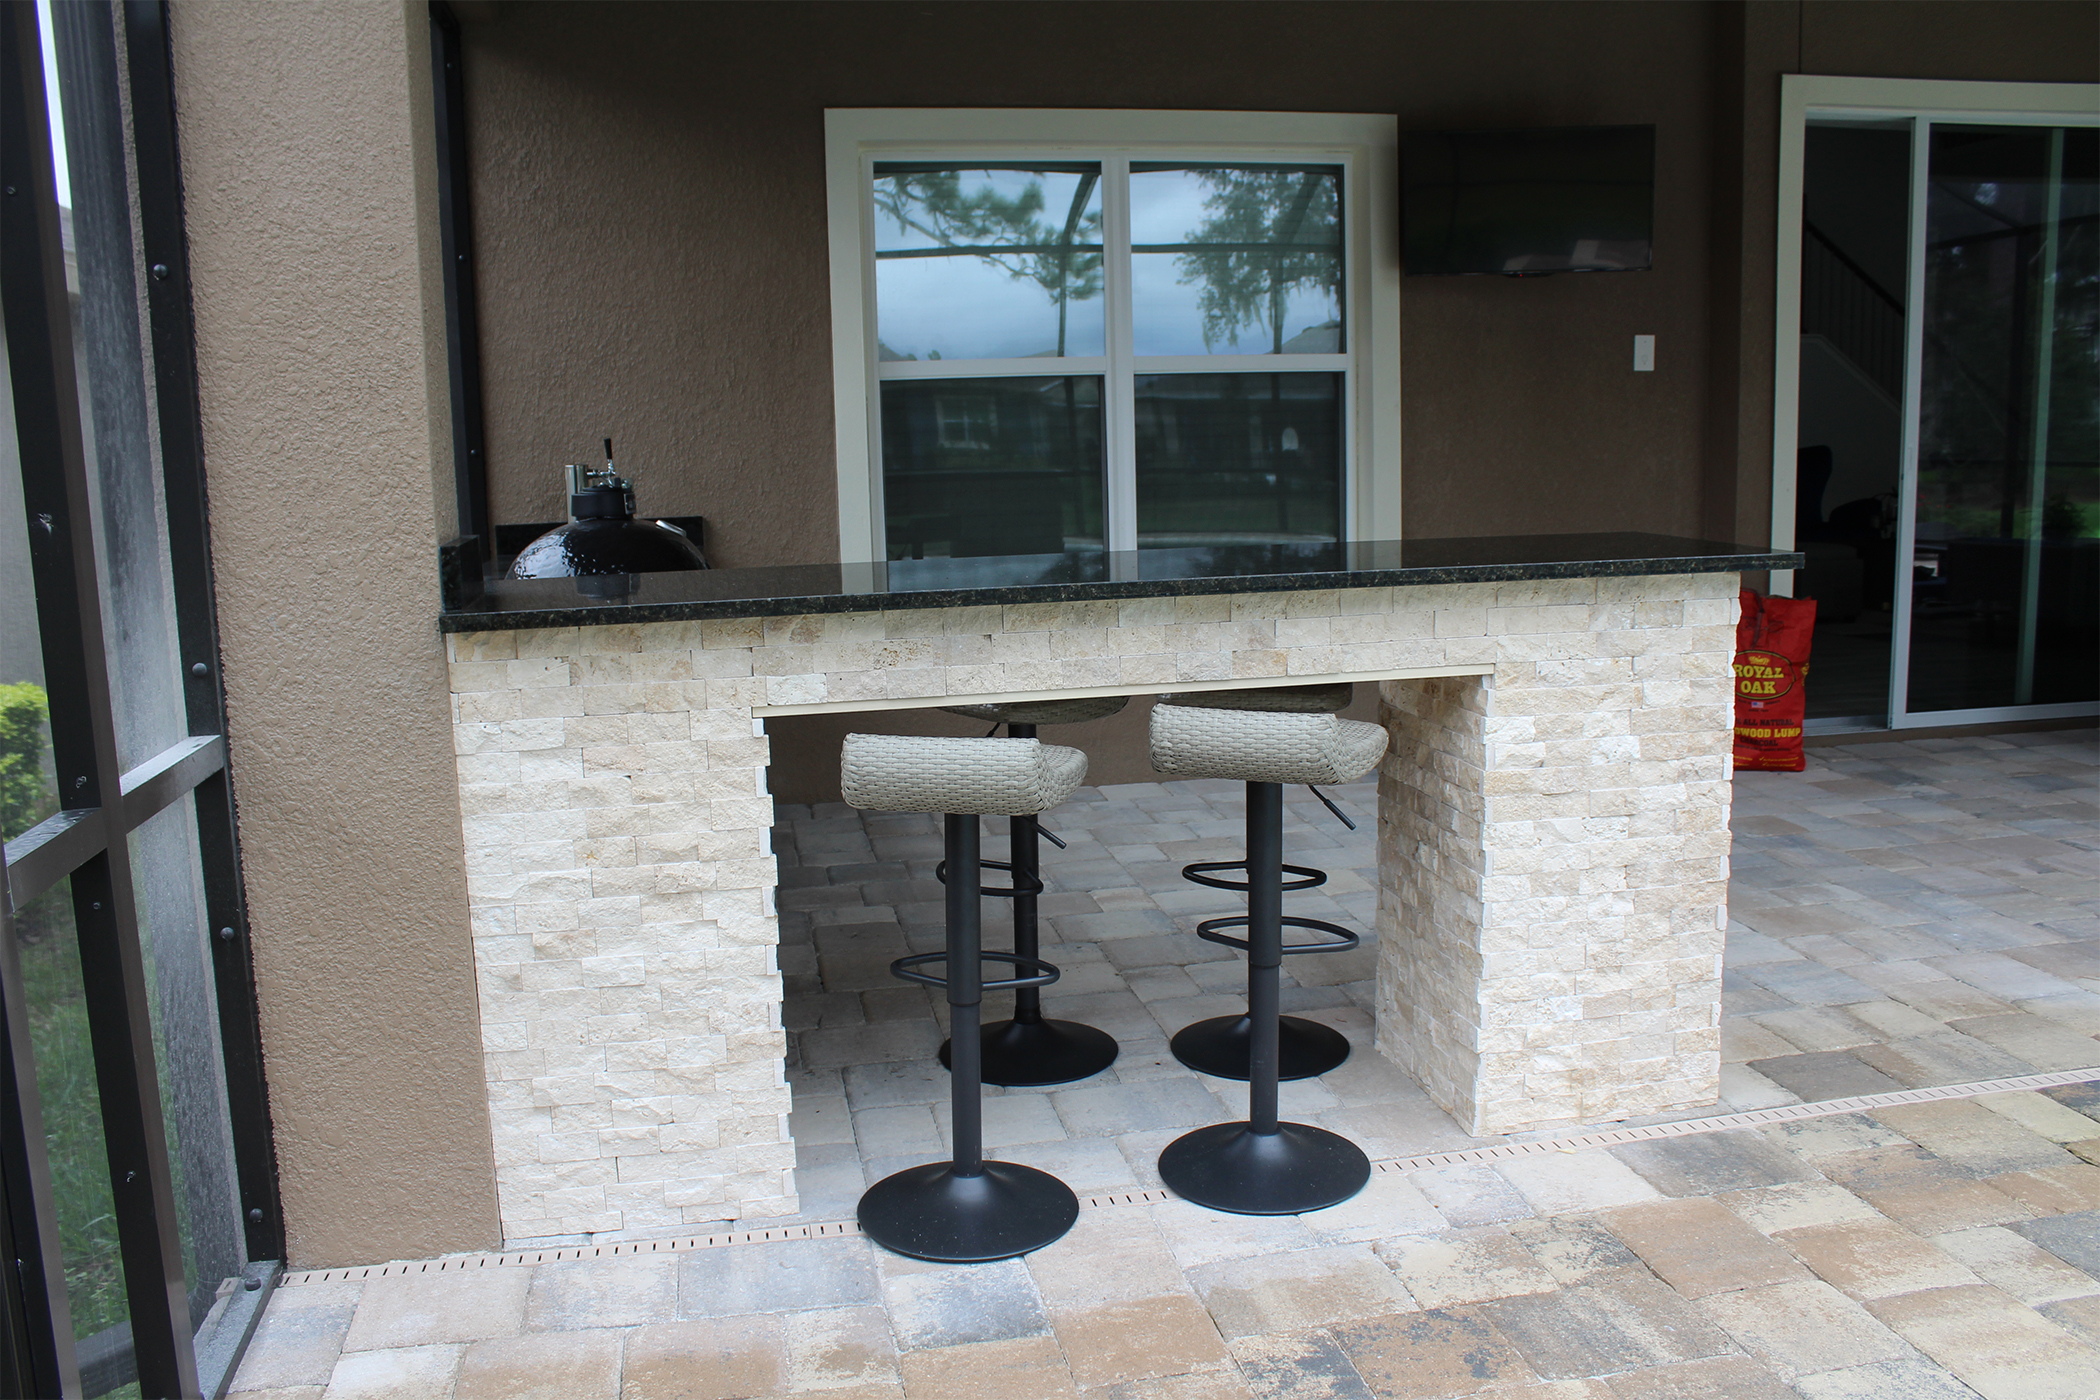 Bar Seating Outdoor Kitchen - Synergy Outdoor Living on Synergy Outdoor Living id=24808